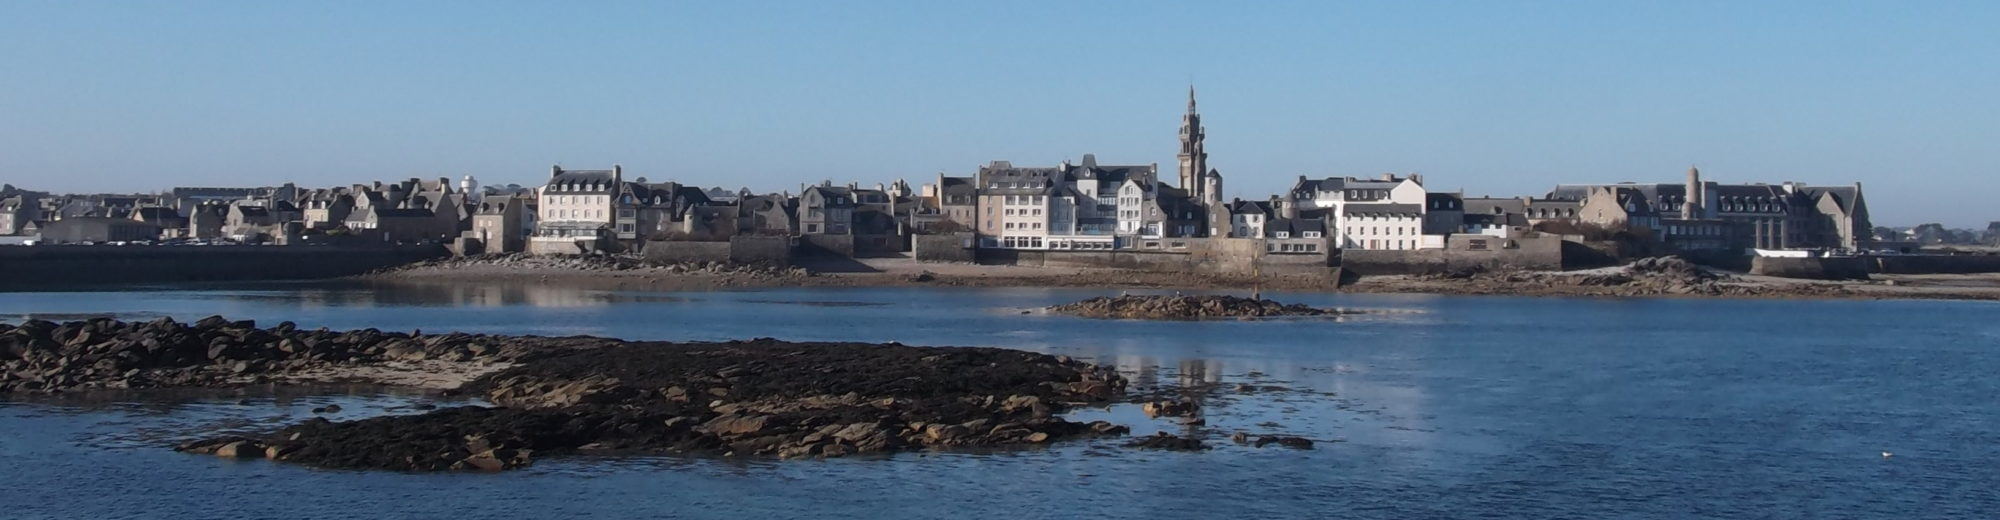 ROSCOFF Appartement cosy 1/3p (idéal 2) 50m Thalasso/mer 2Chambres